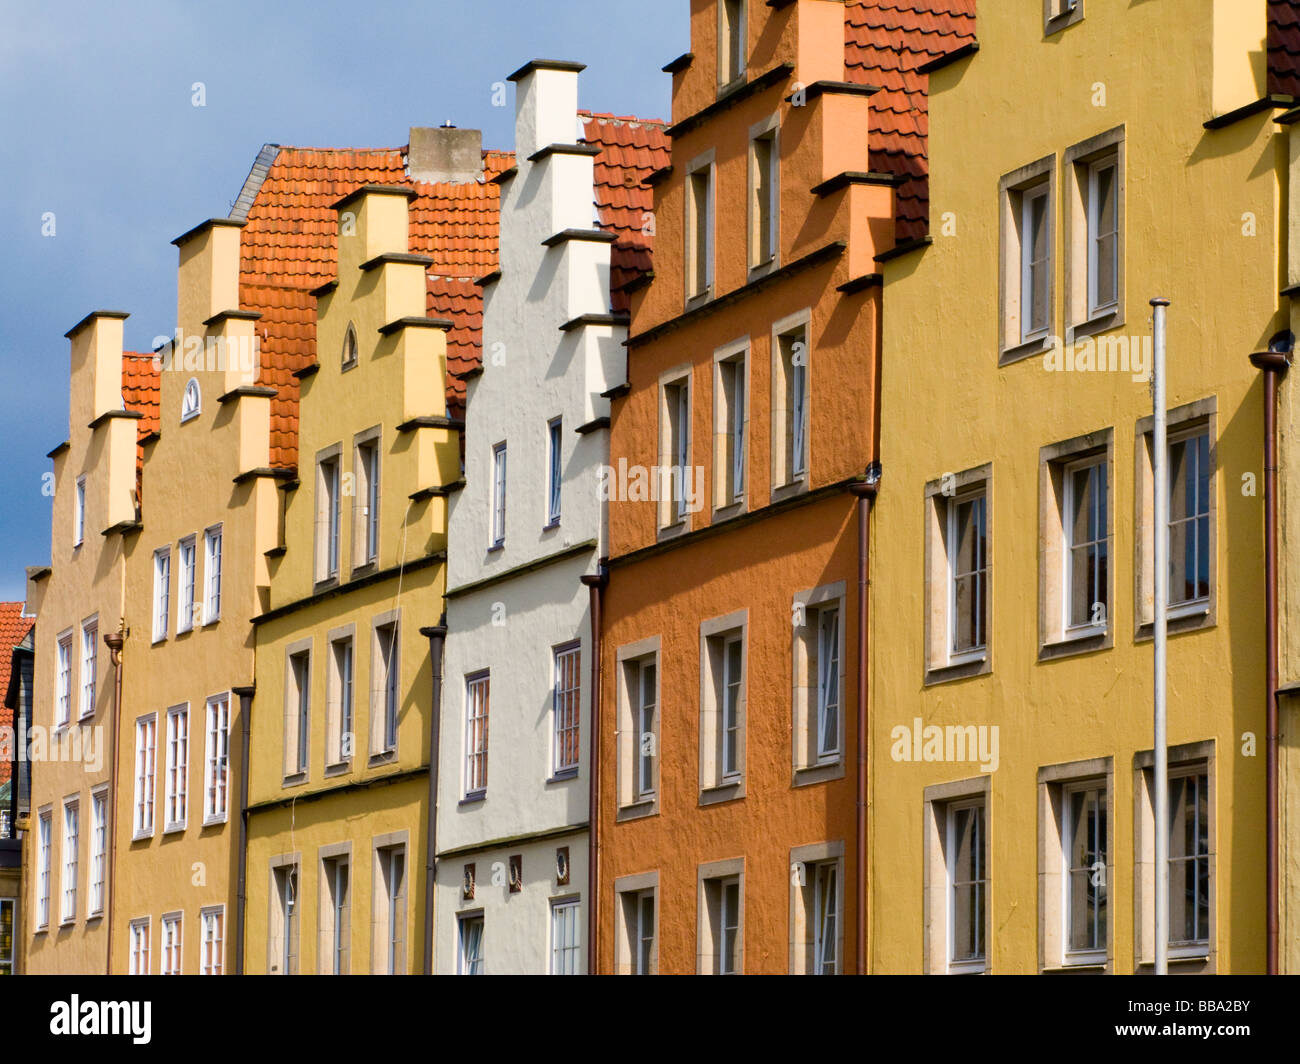 Crow stepped gable on house - Stock Image